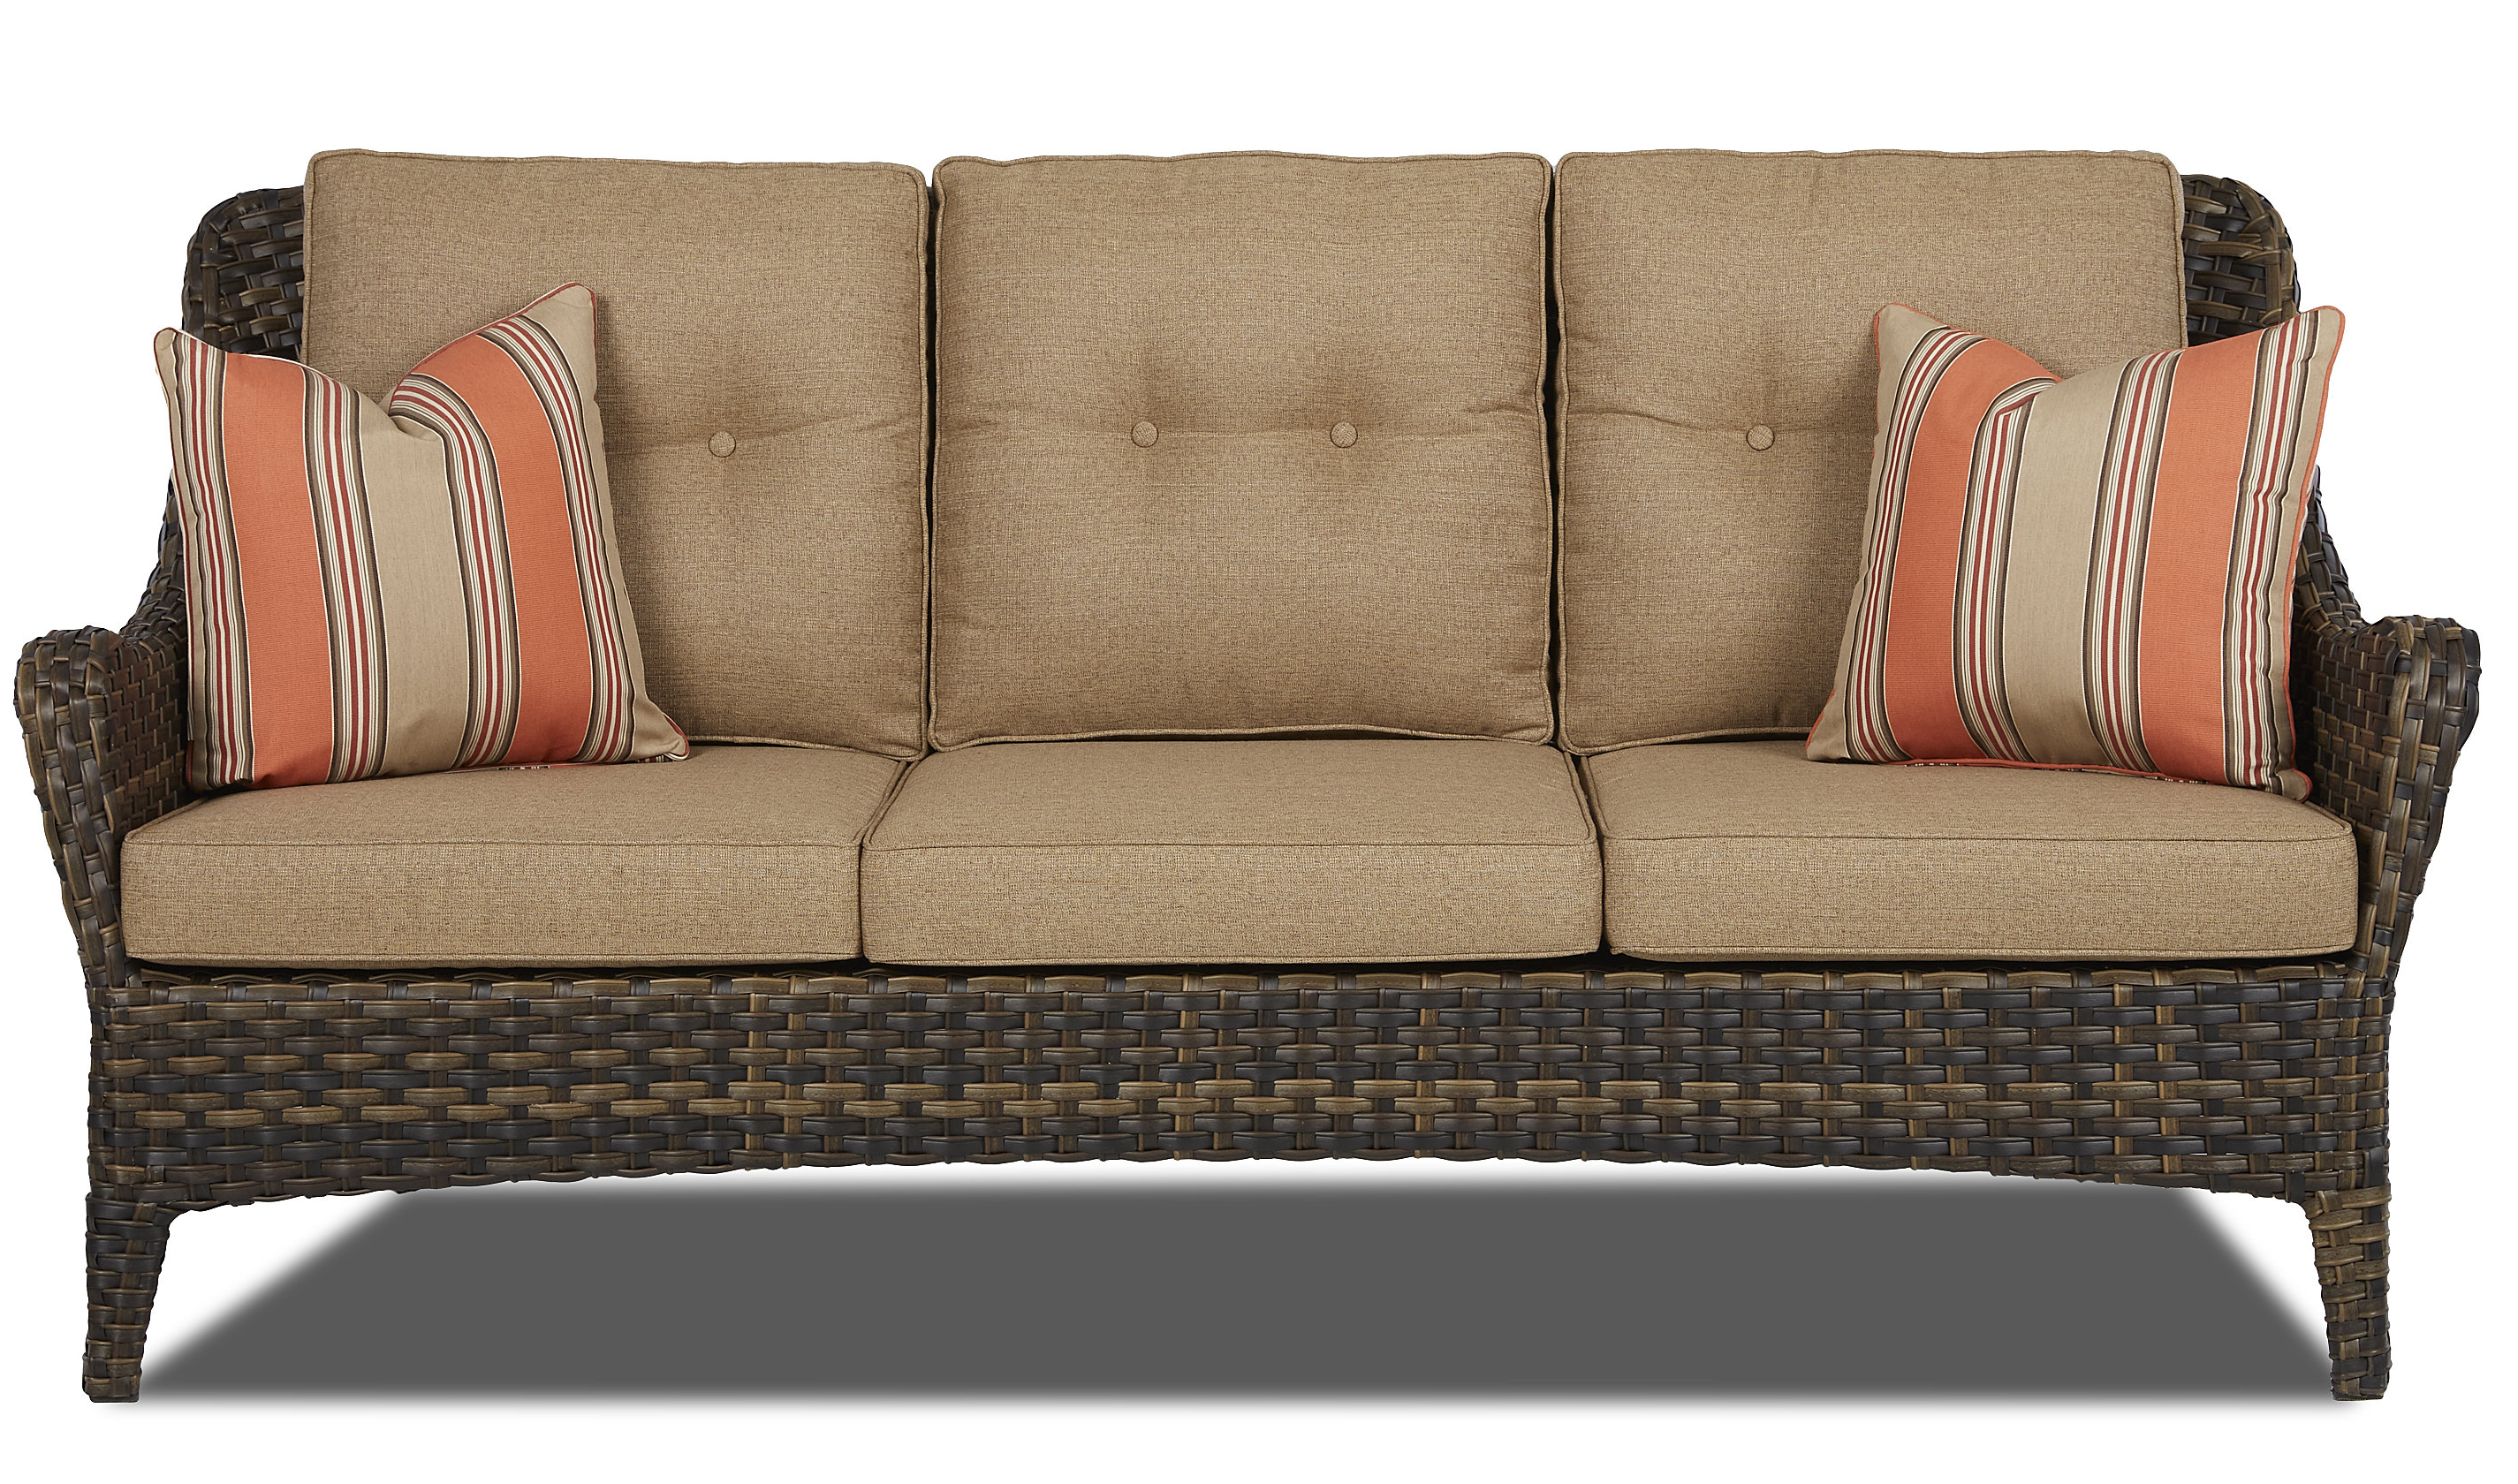 Avadi Outdoor Sofas & Ottomans 3 Piece Set For Current Ranstead Patio Sofa With Cushion (Gallery 11 of 25)